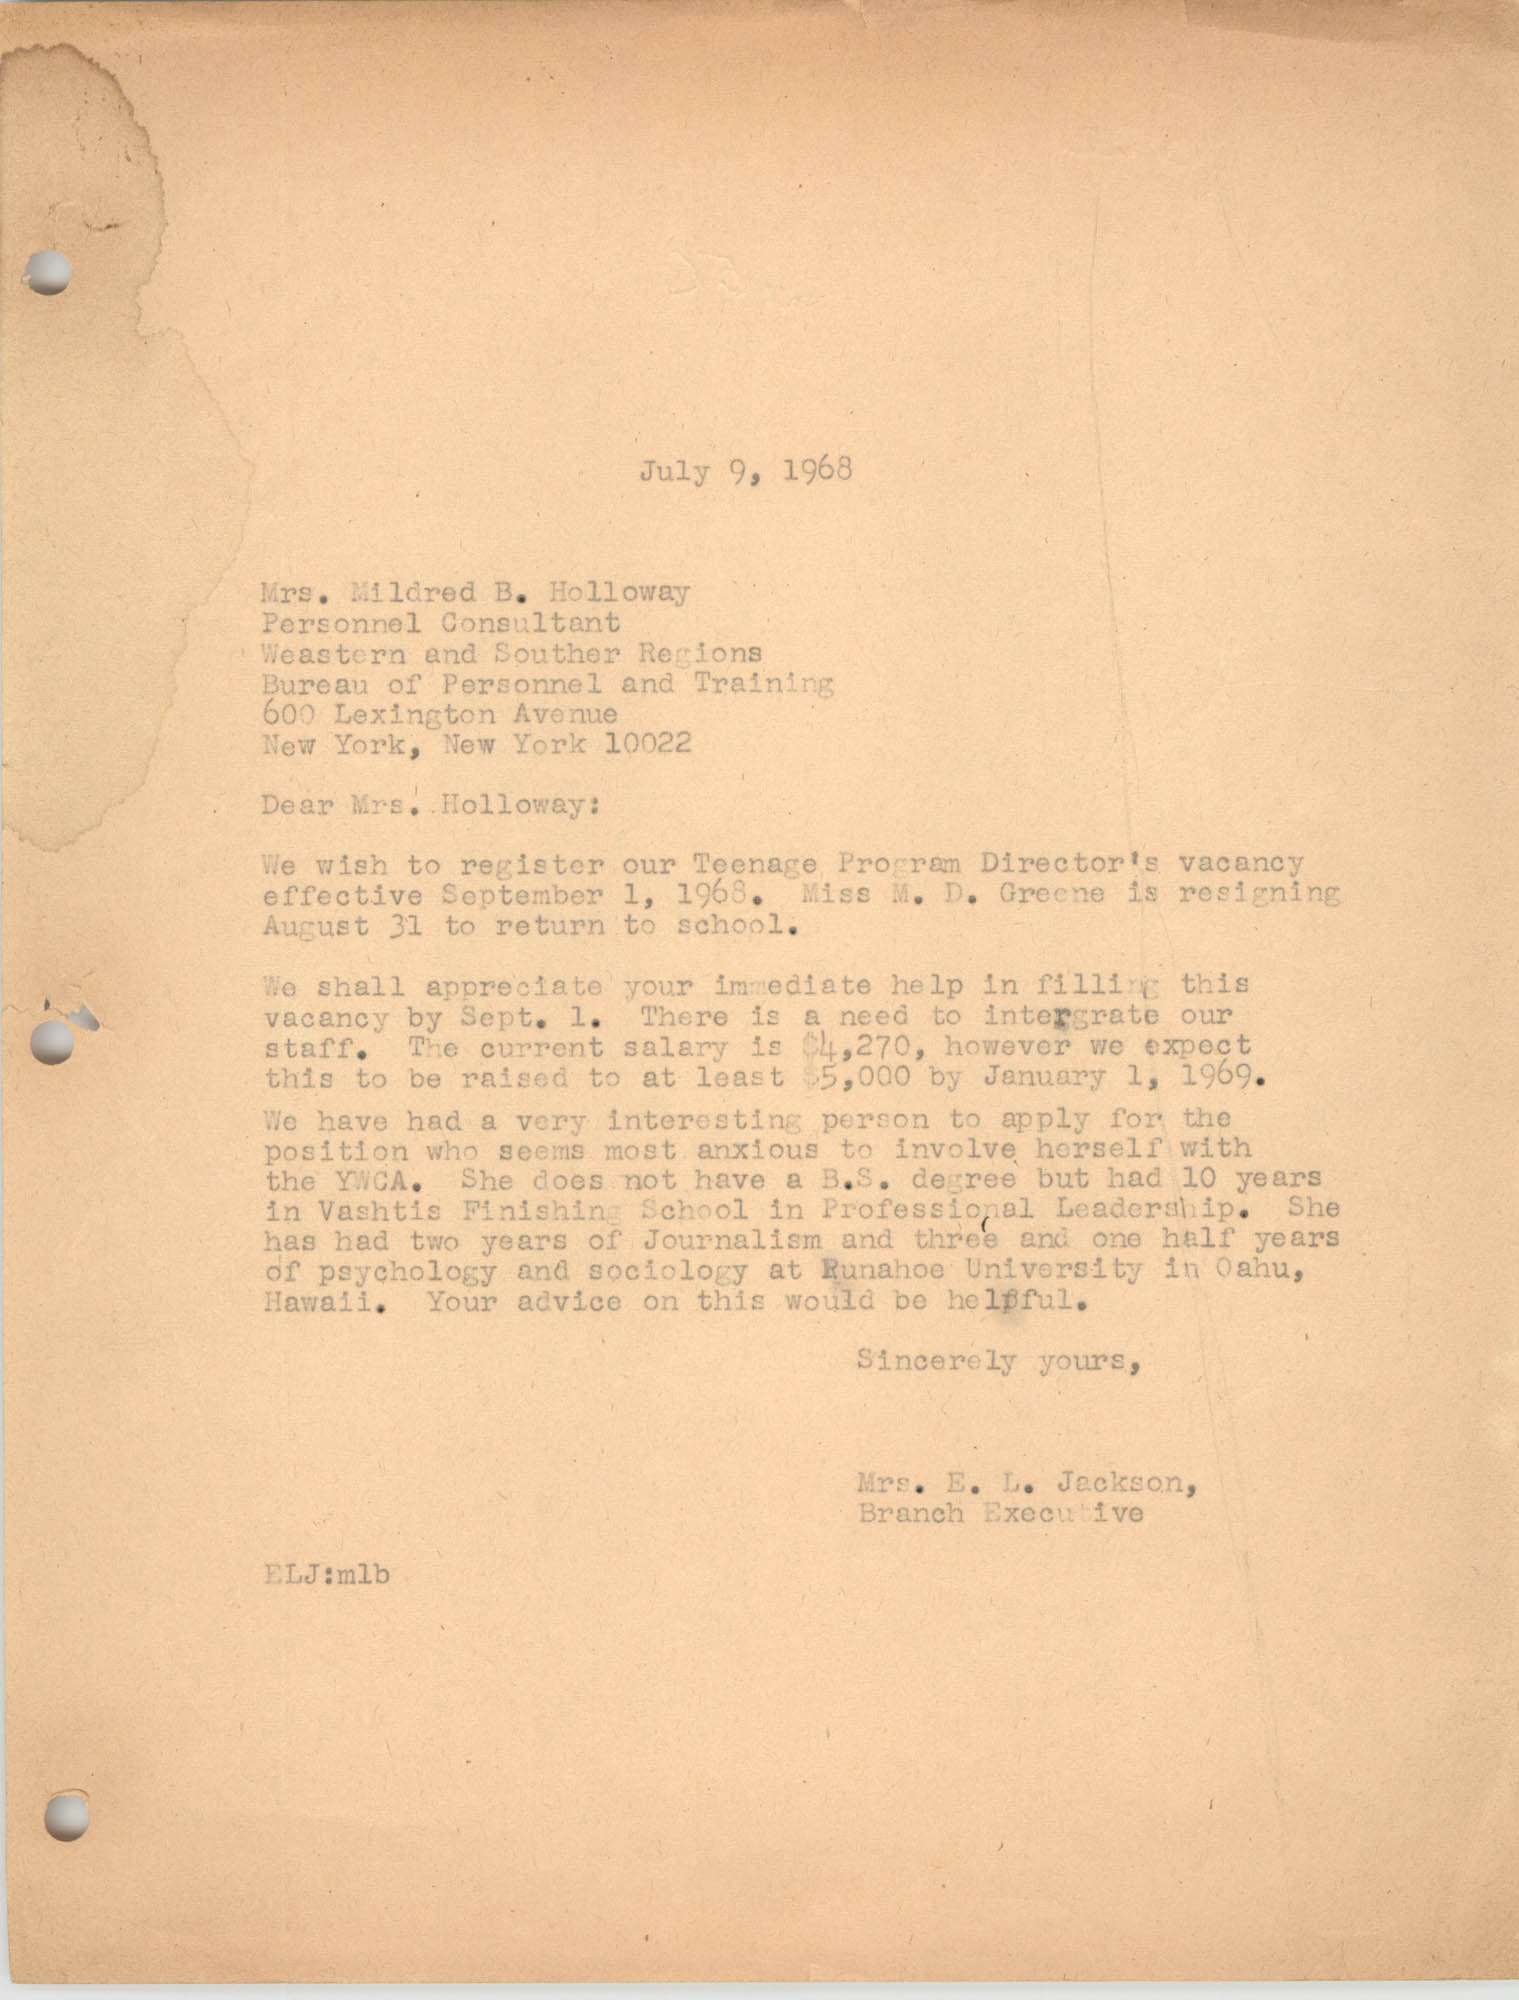 Letter from Christine O. Jackson to Mildred B. Holloway, July 9, 1968